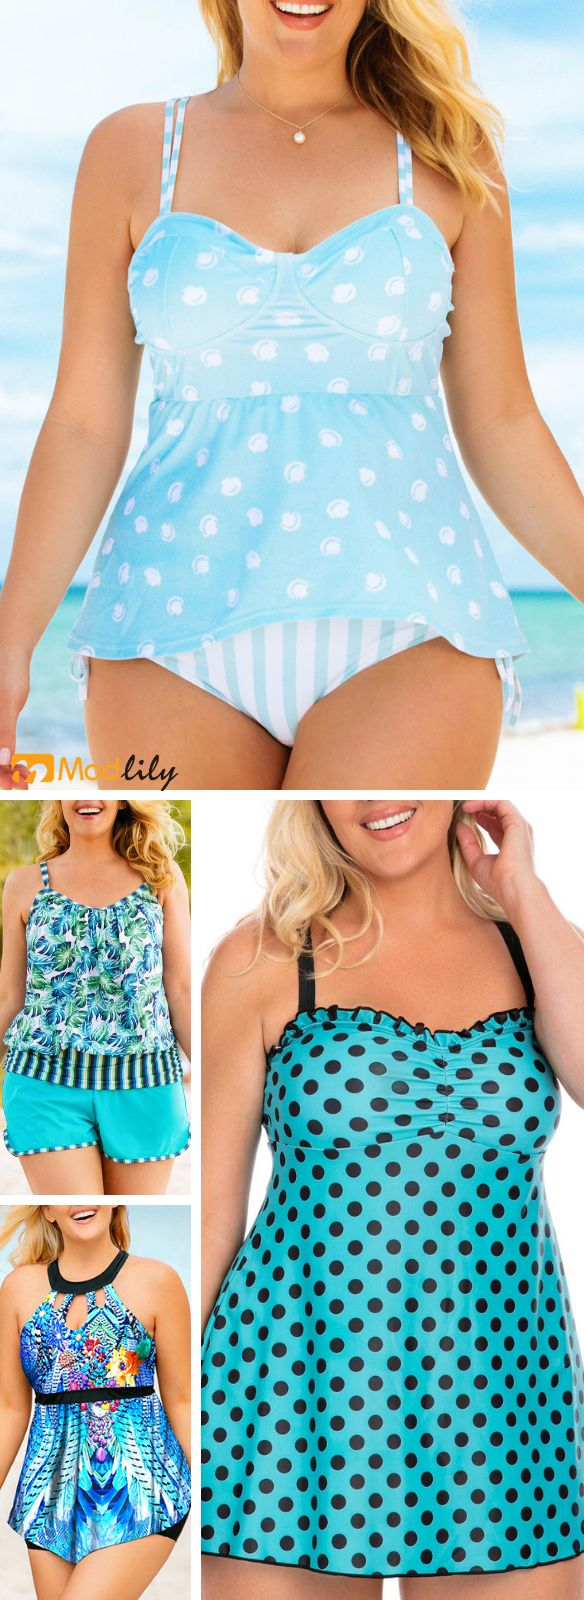 plus size, printed, casual, summer outfit, swimwea…